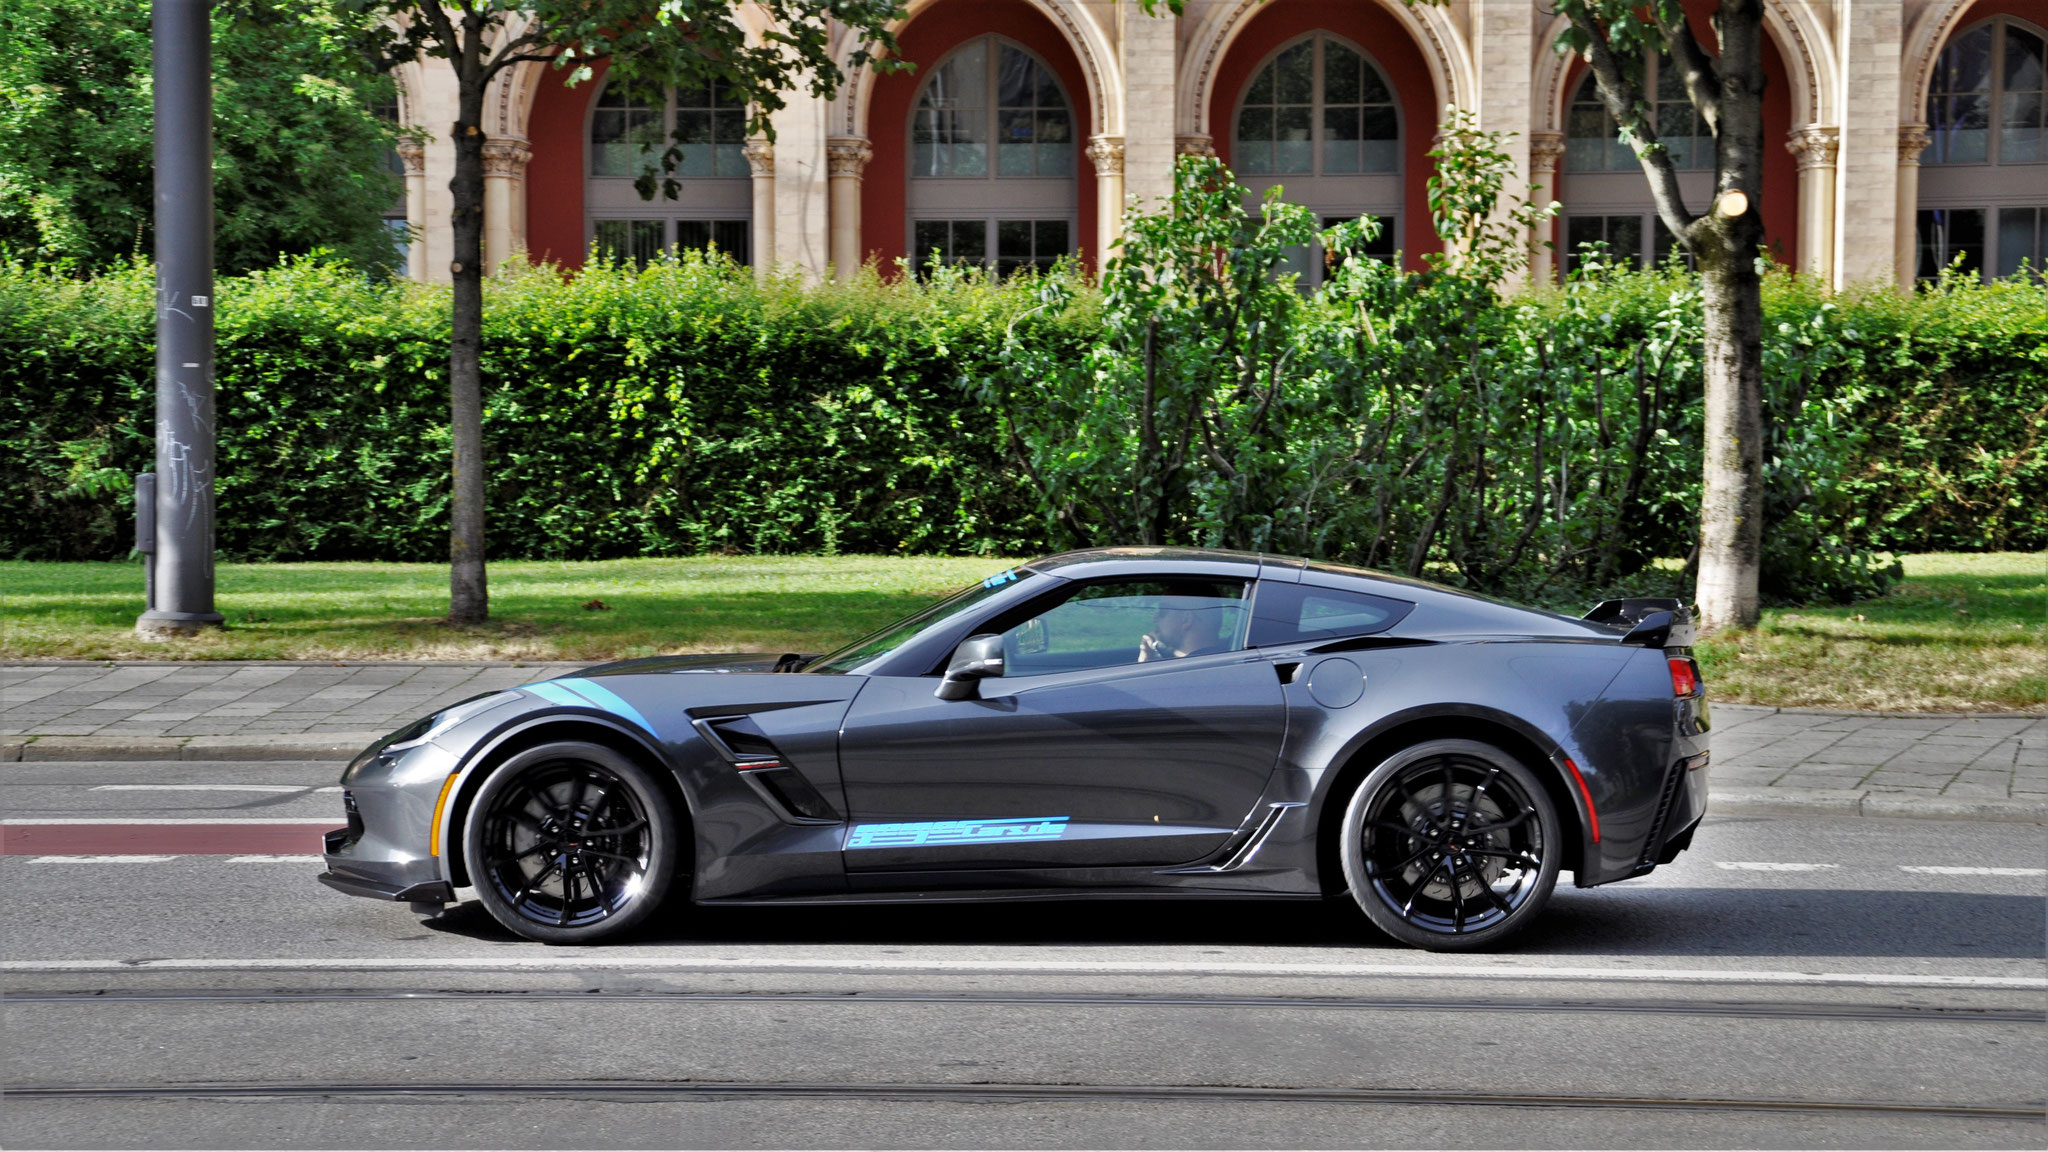 Chevrolet Corvette C7 Grand Sport - M-GC-115